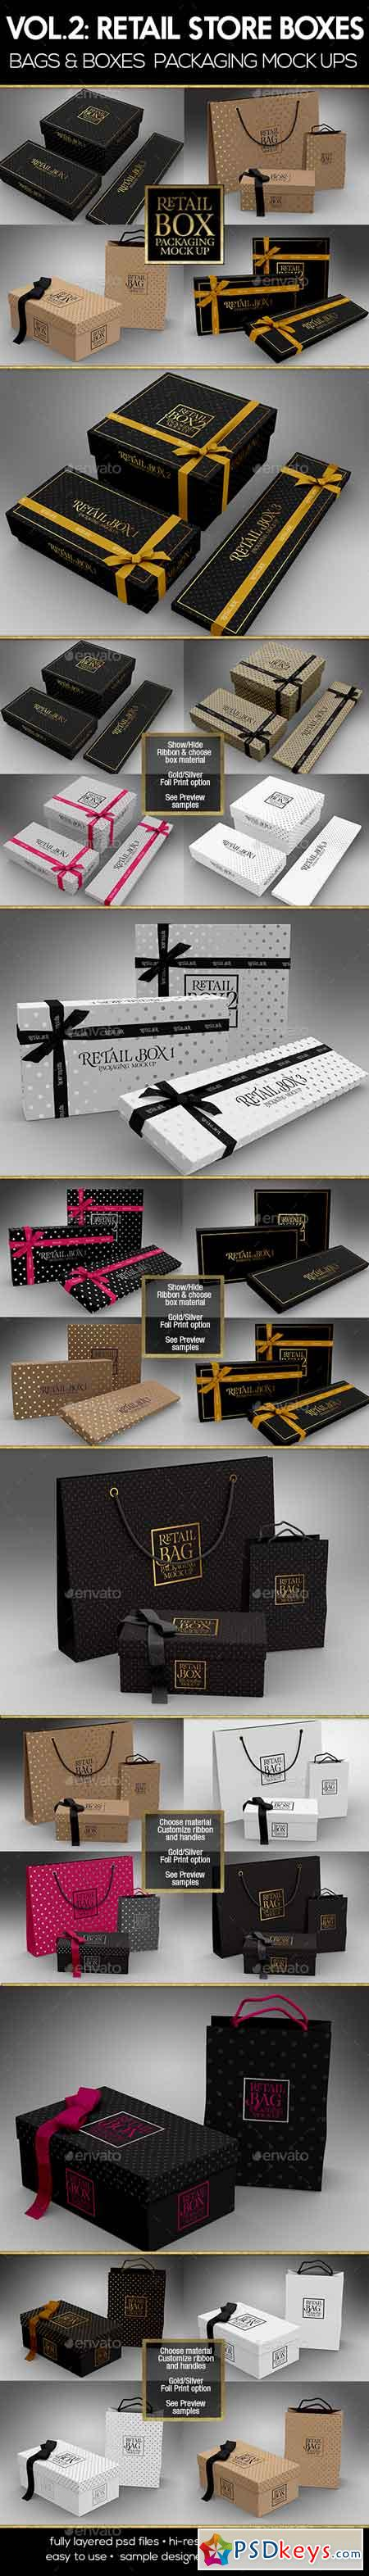 Retail Boxes Vol.2 Bag & Box Packaging Mock Ups 19346258